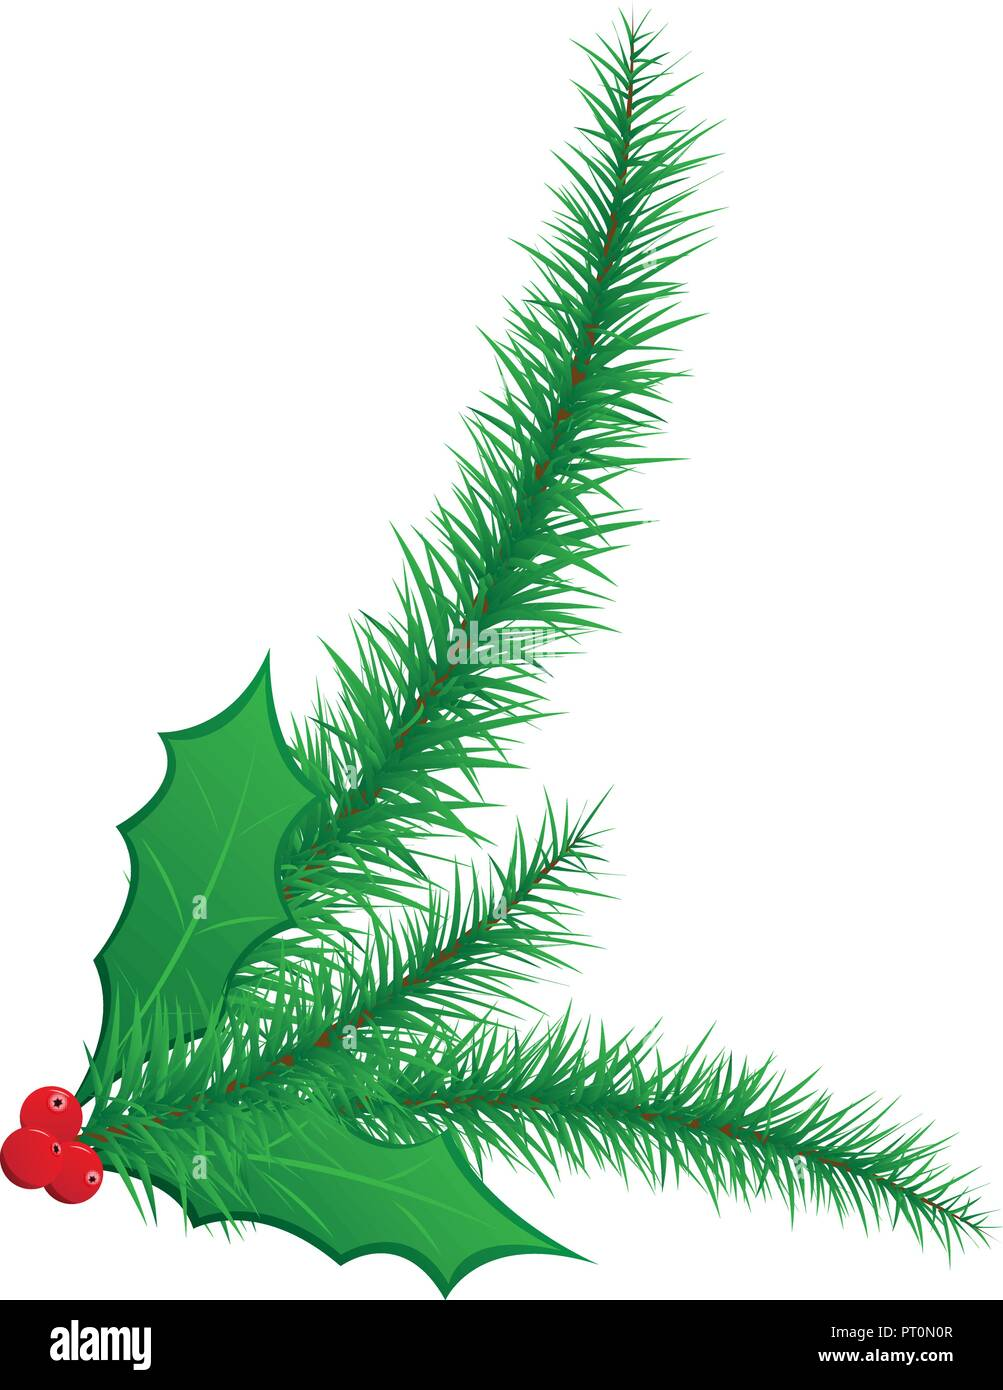 Green Christmas spruce pine needles with holly leaves and red berries illustration - Stock Vector